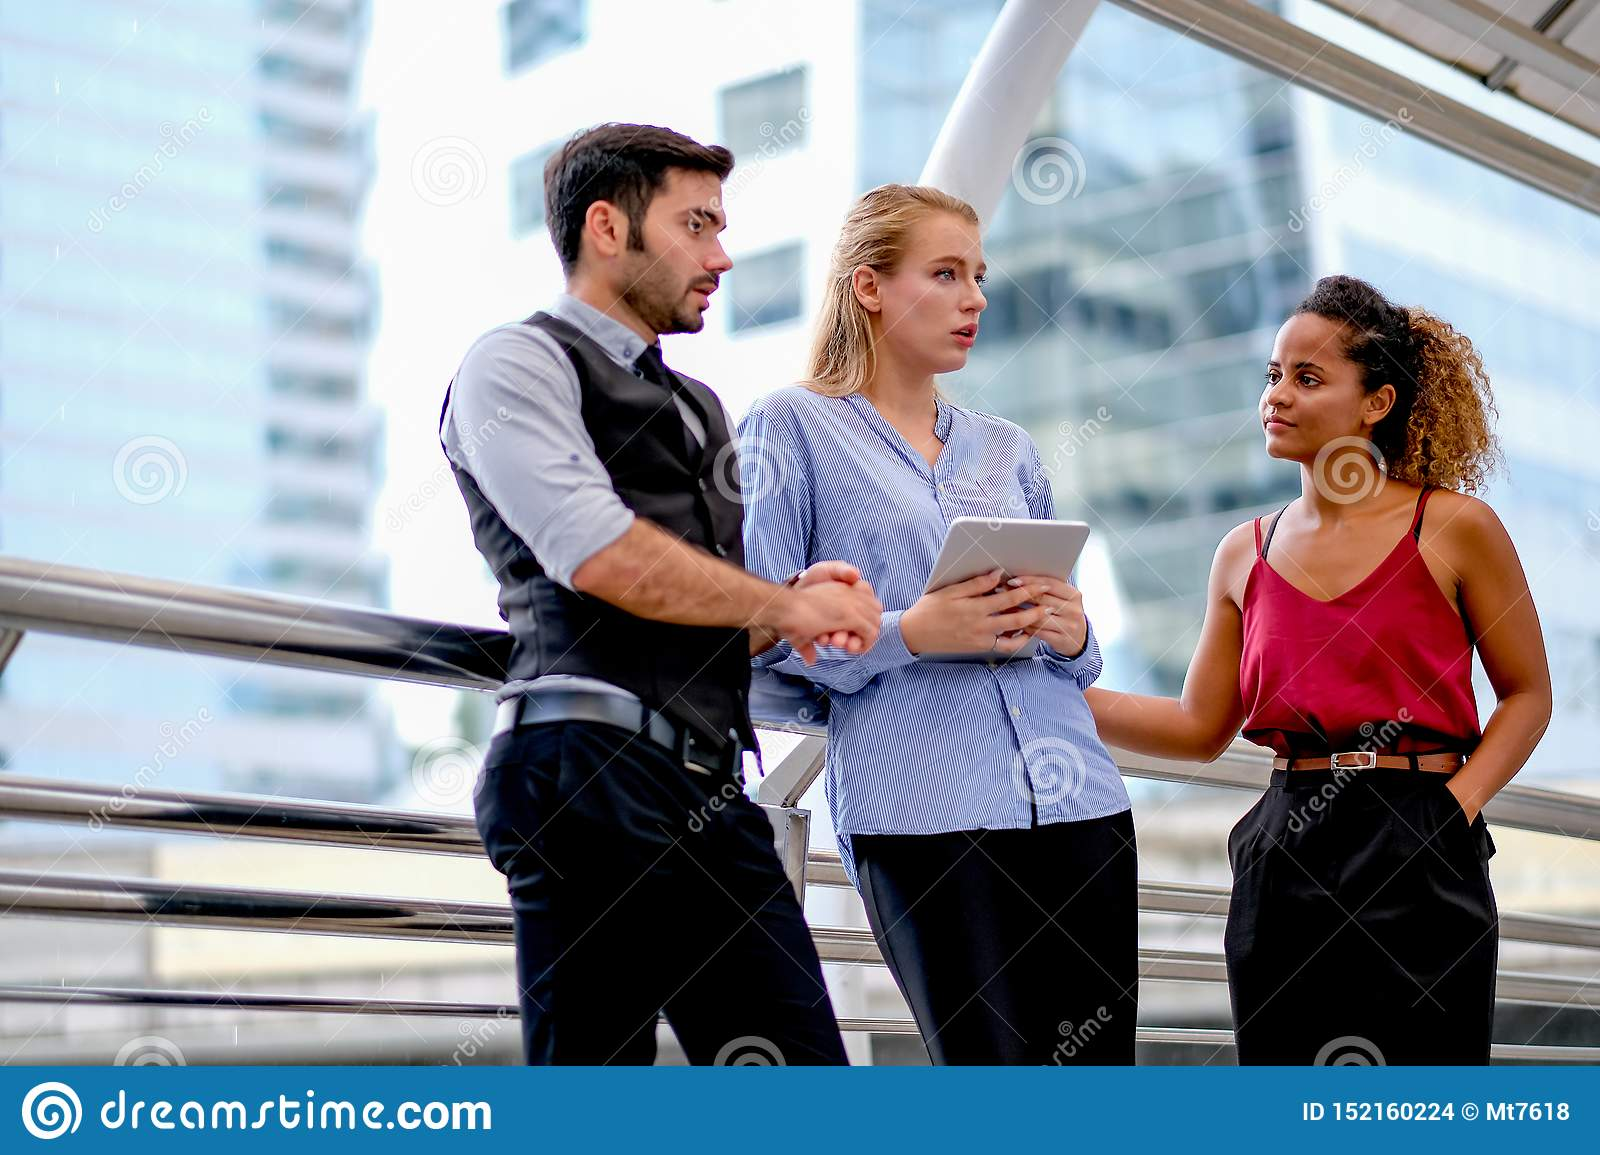 One business man discuss about work with his team, two women with one mixed race tan skin and white Caucasian woman who holds